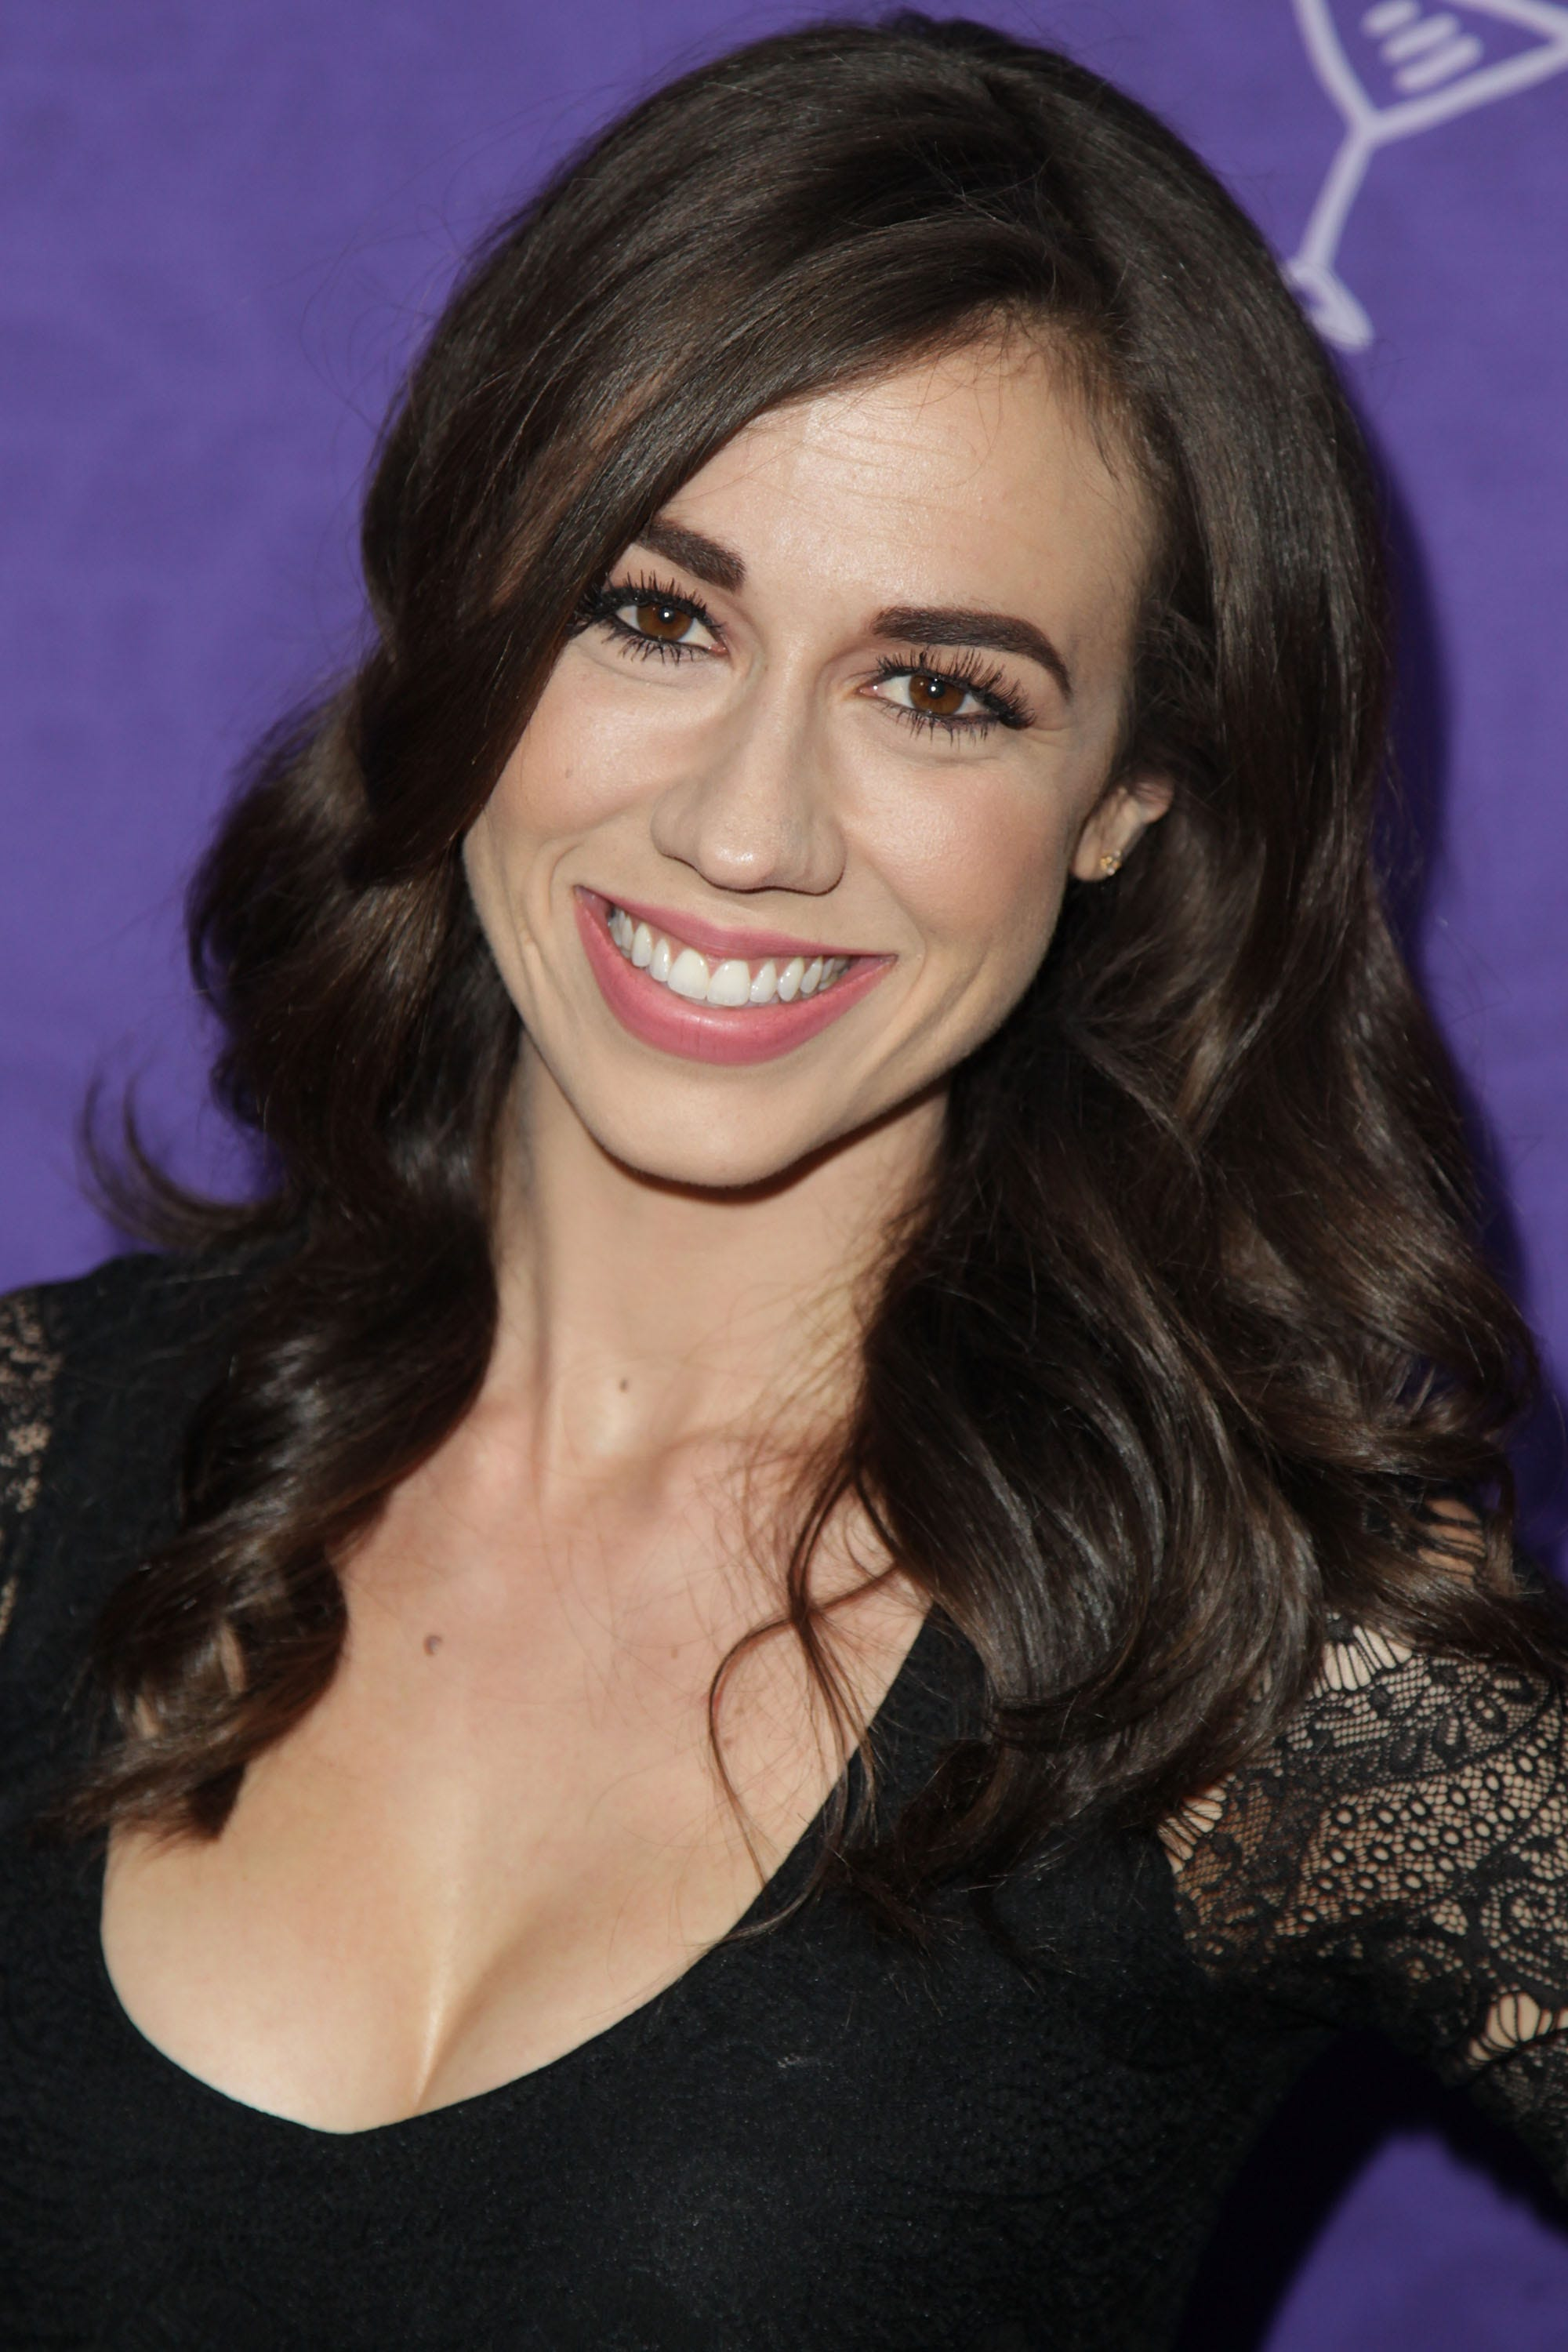 Images Colleen Ballinger nudes (39 foto and video), Ass, Bikini, Boobs, see through 2020